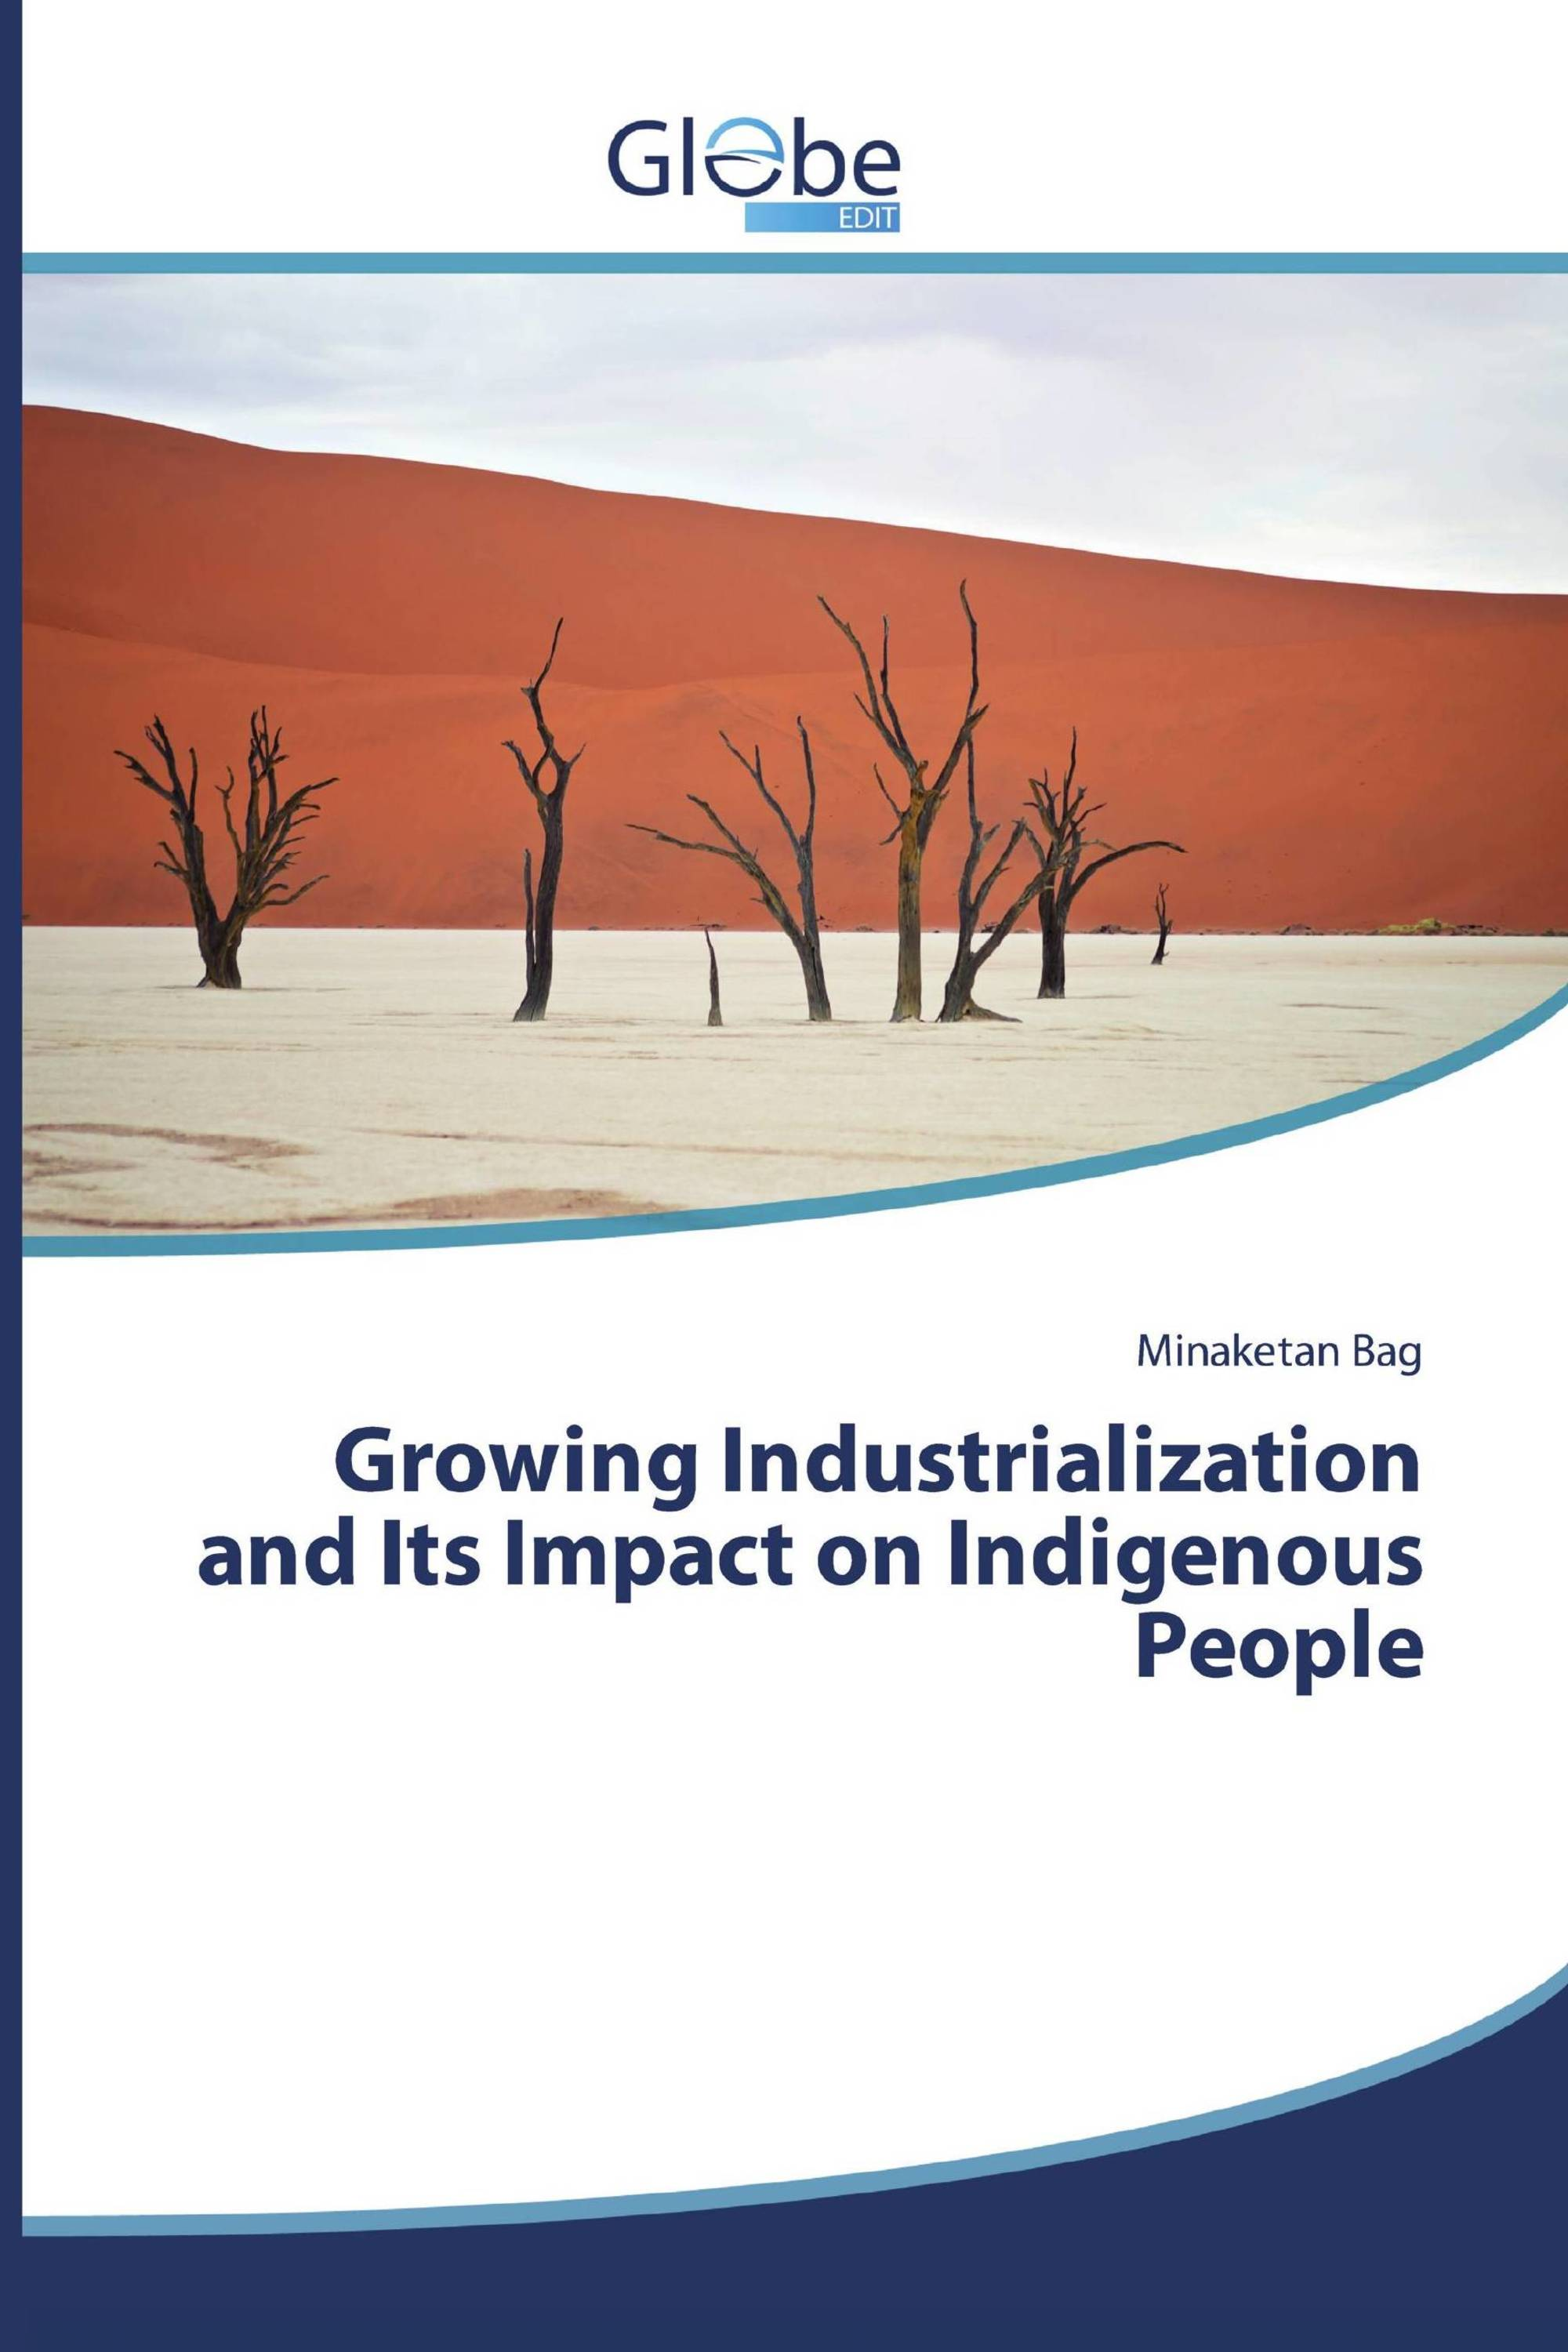 Growing Industrialization and Its Impact on Indigenous People